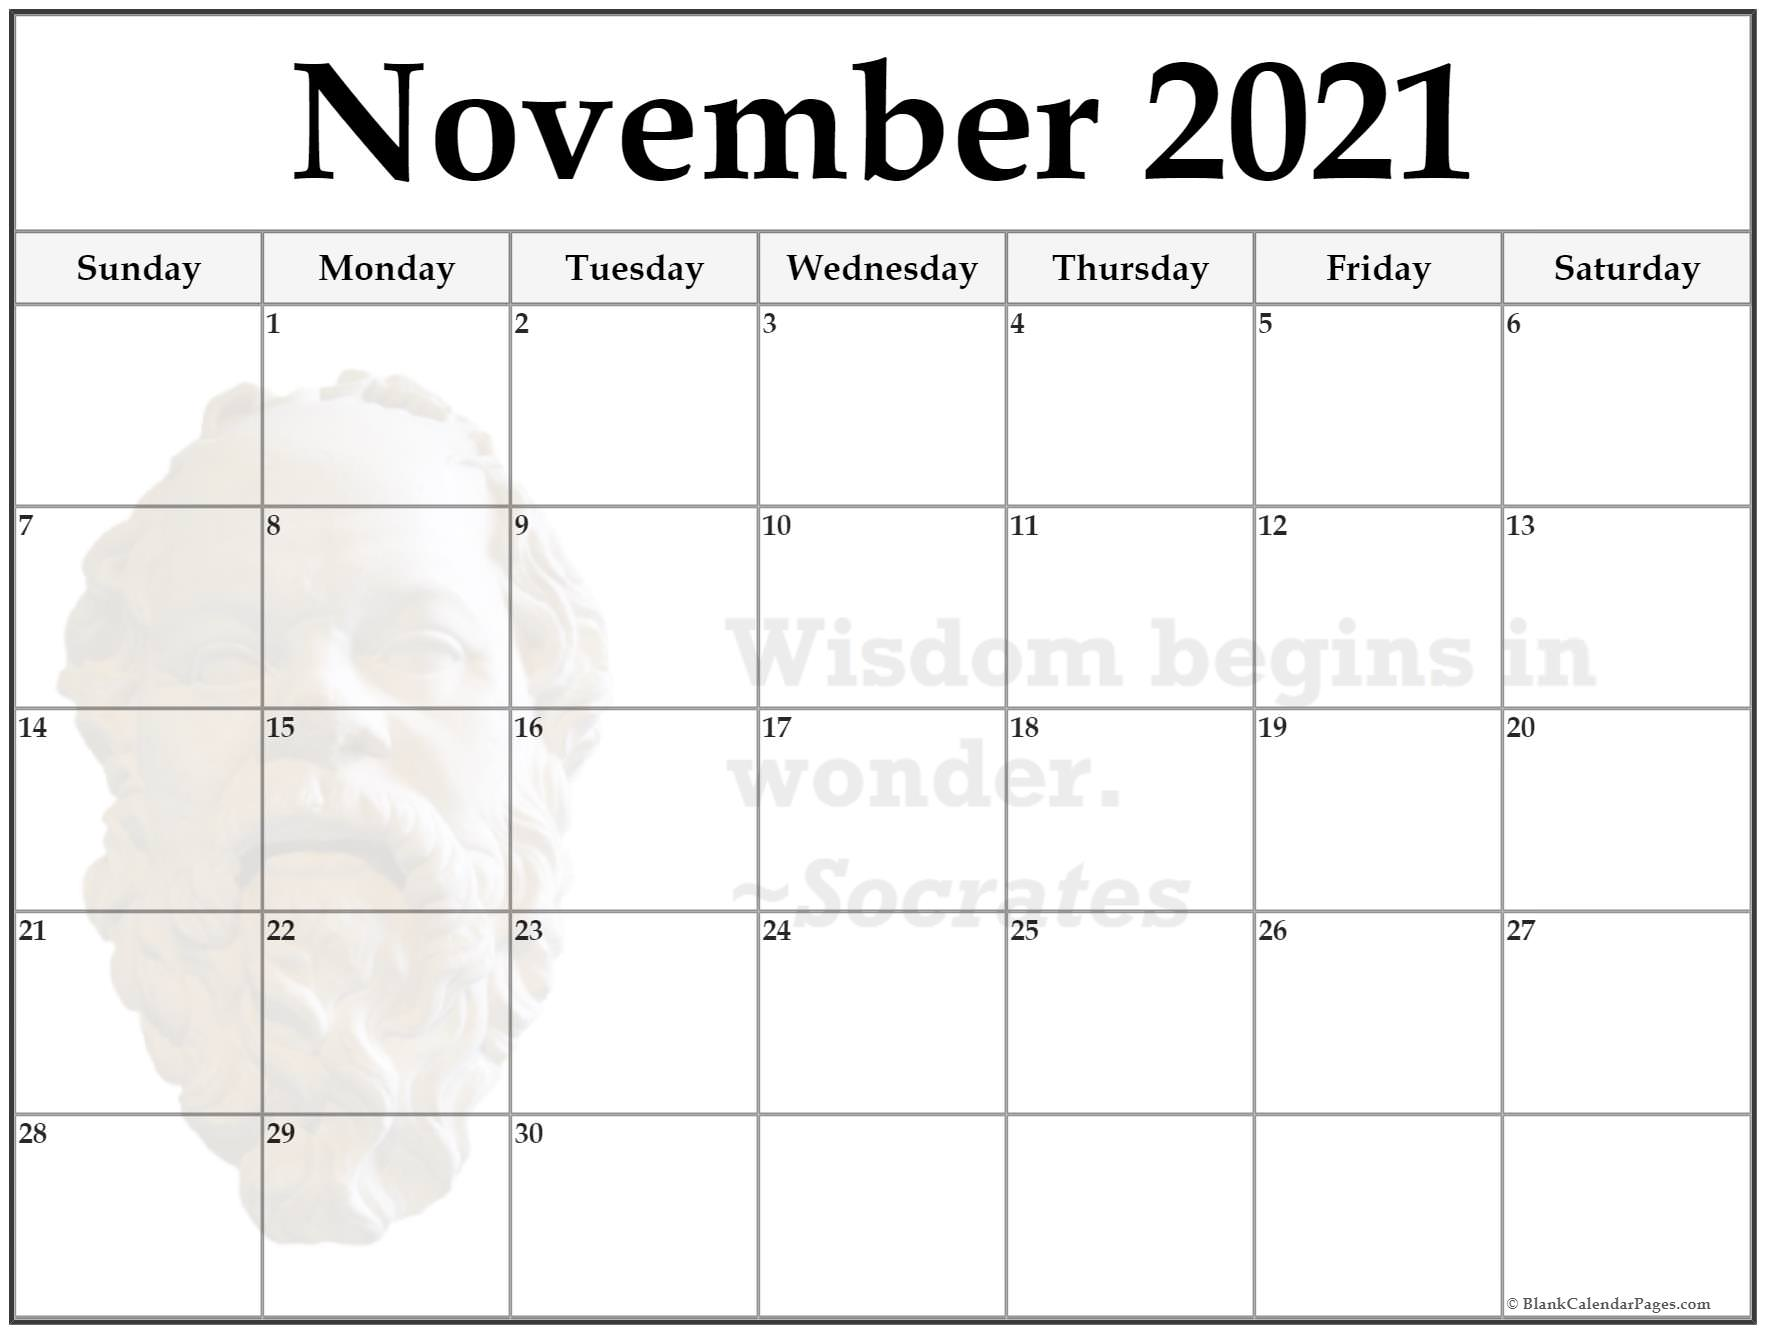 November 2020 monthly quote calendar template. Wisdom begins in wonder. ~Socrates